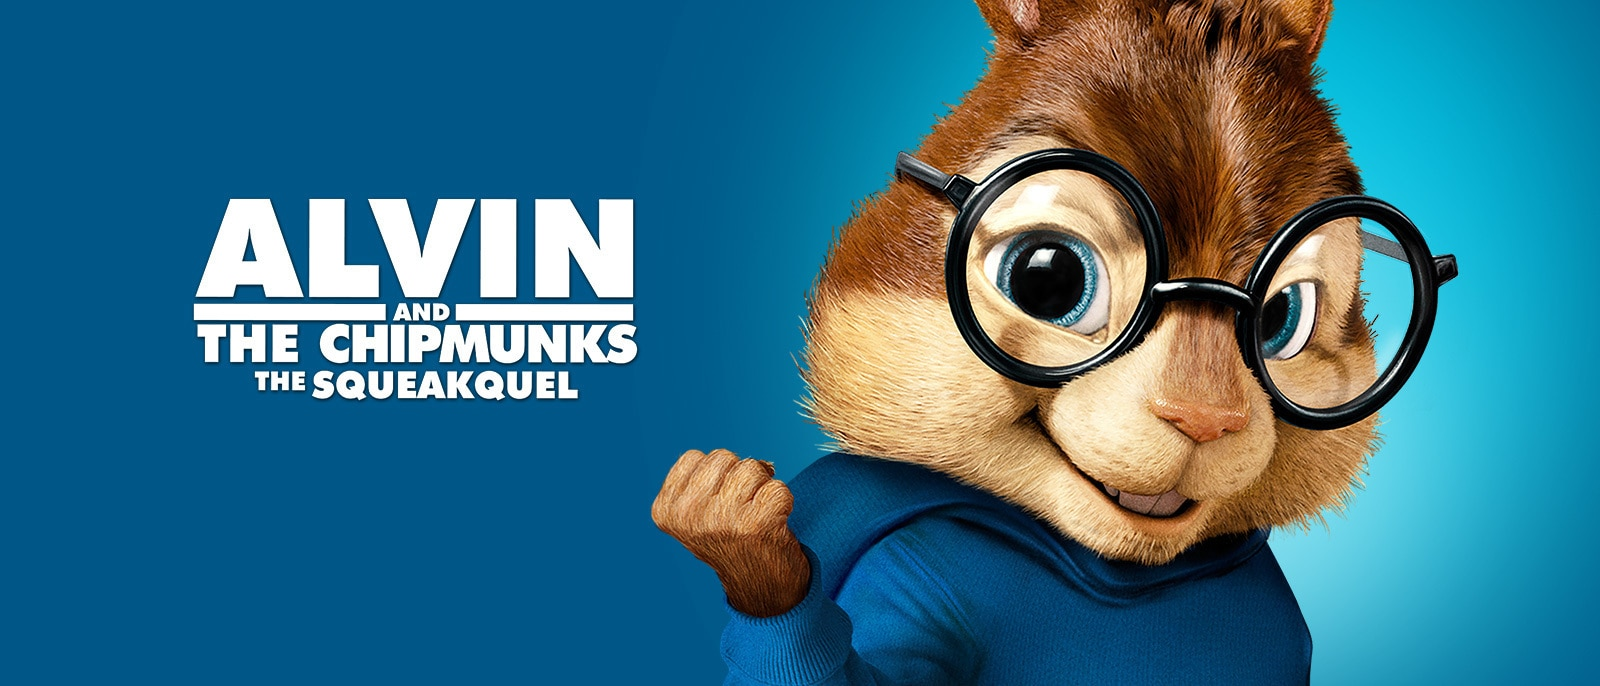 Alvin and the Chipmunks: The Squeakquel Hero